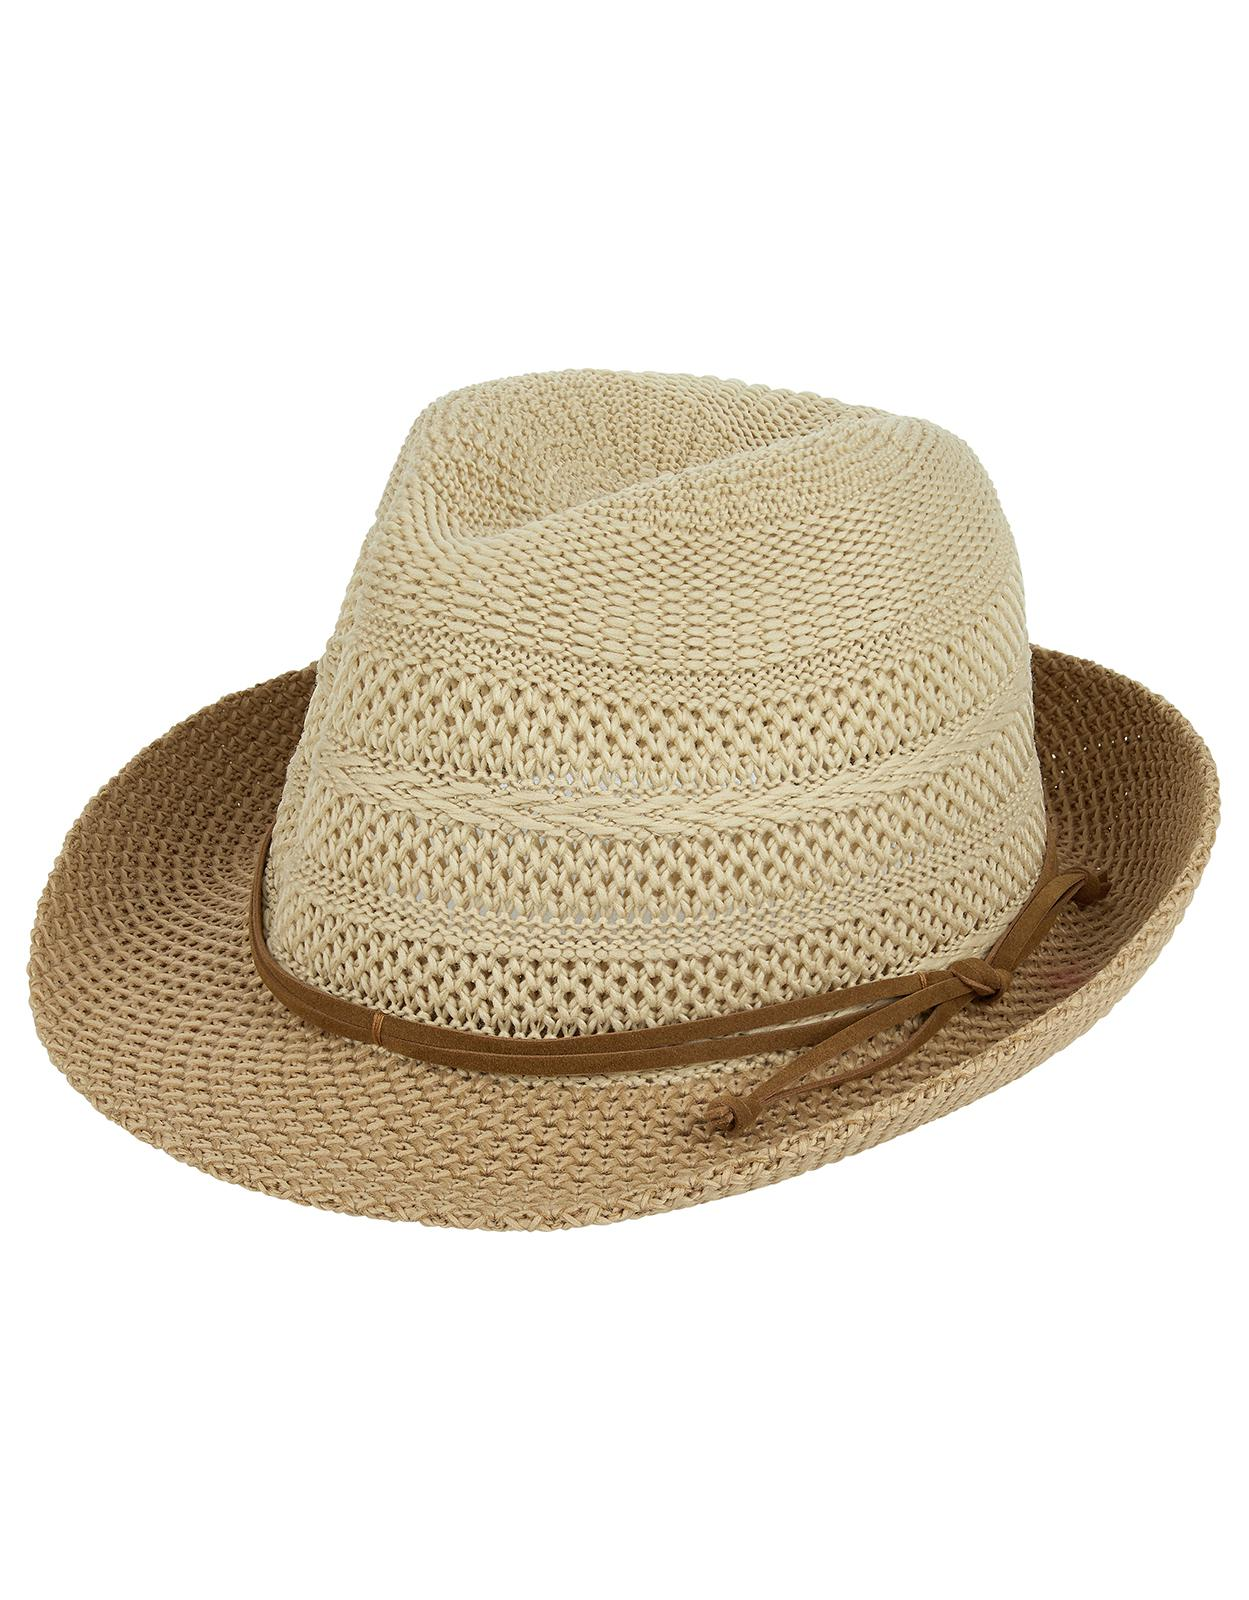 01f3ac90 Accessorize Rancher Packable Trilby Hat in Natural - Lyst